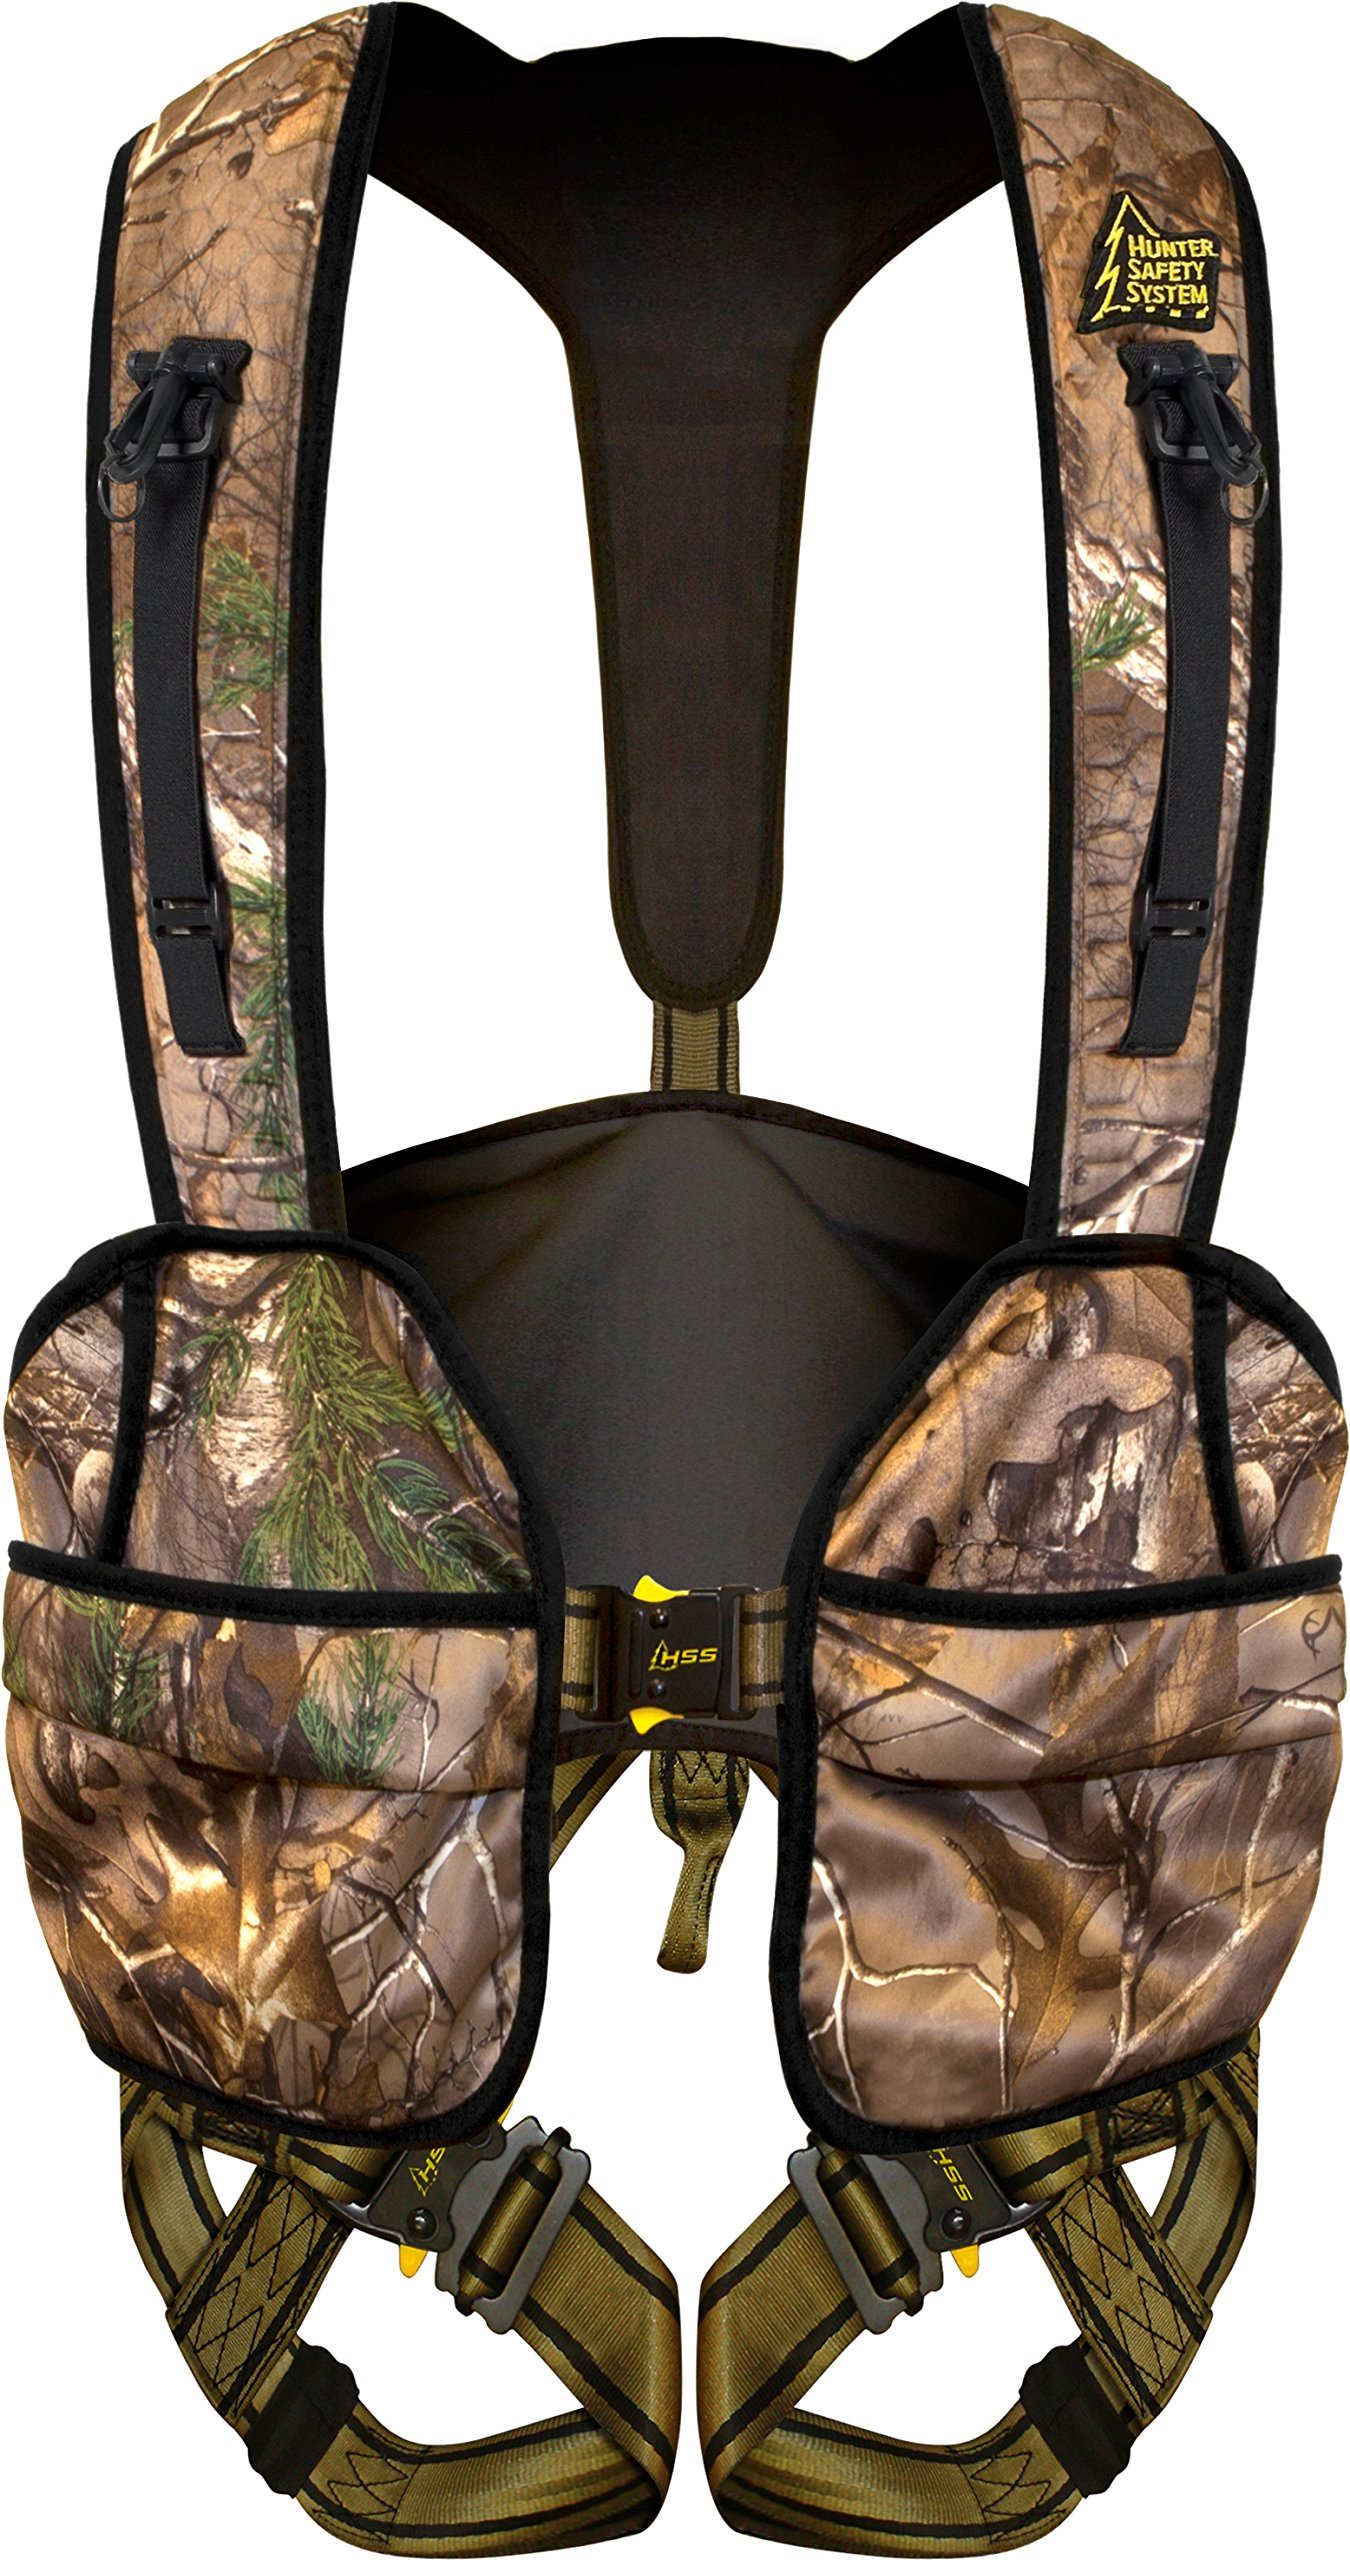 Hunter Safety System Hybrid Flex Harness, Realtree X-tra Camouflage, XX-Large/3X-Large/250-300 lb.